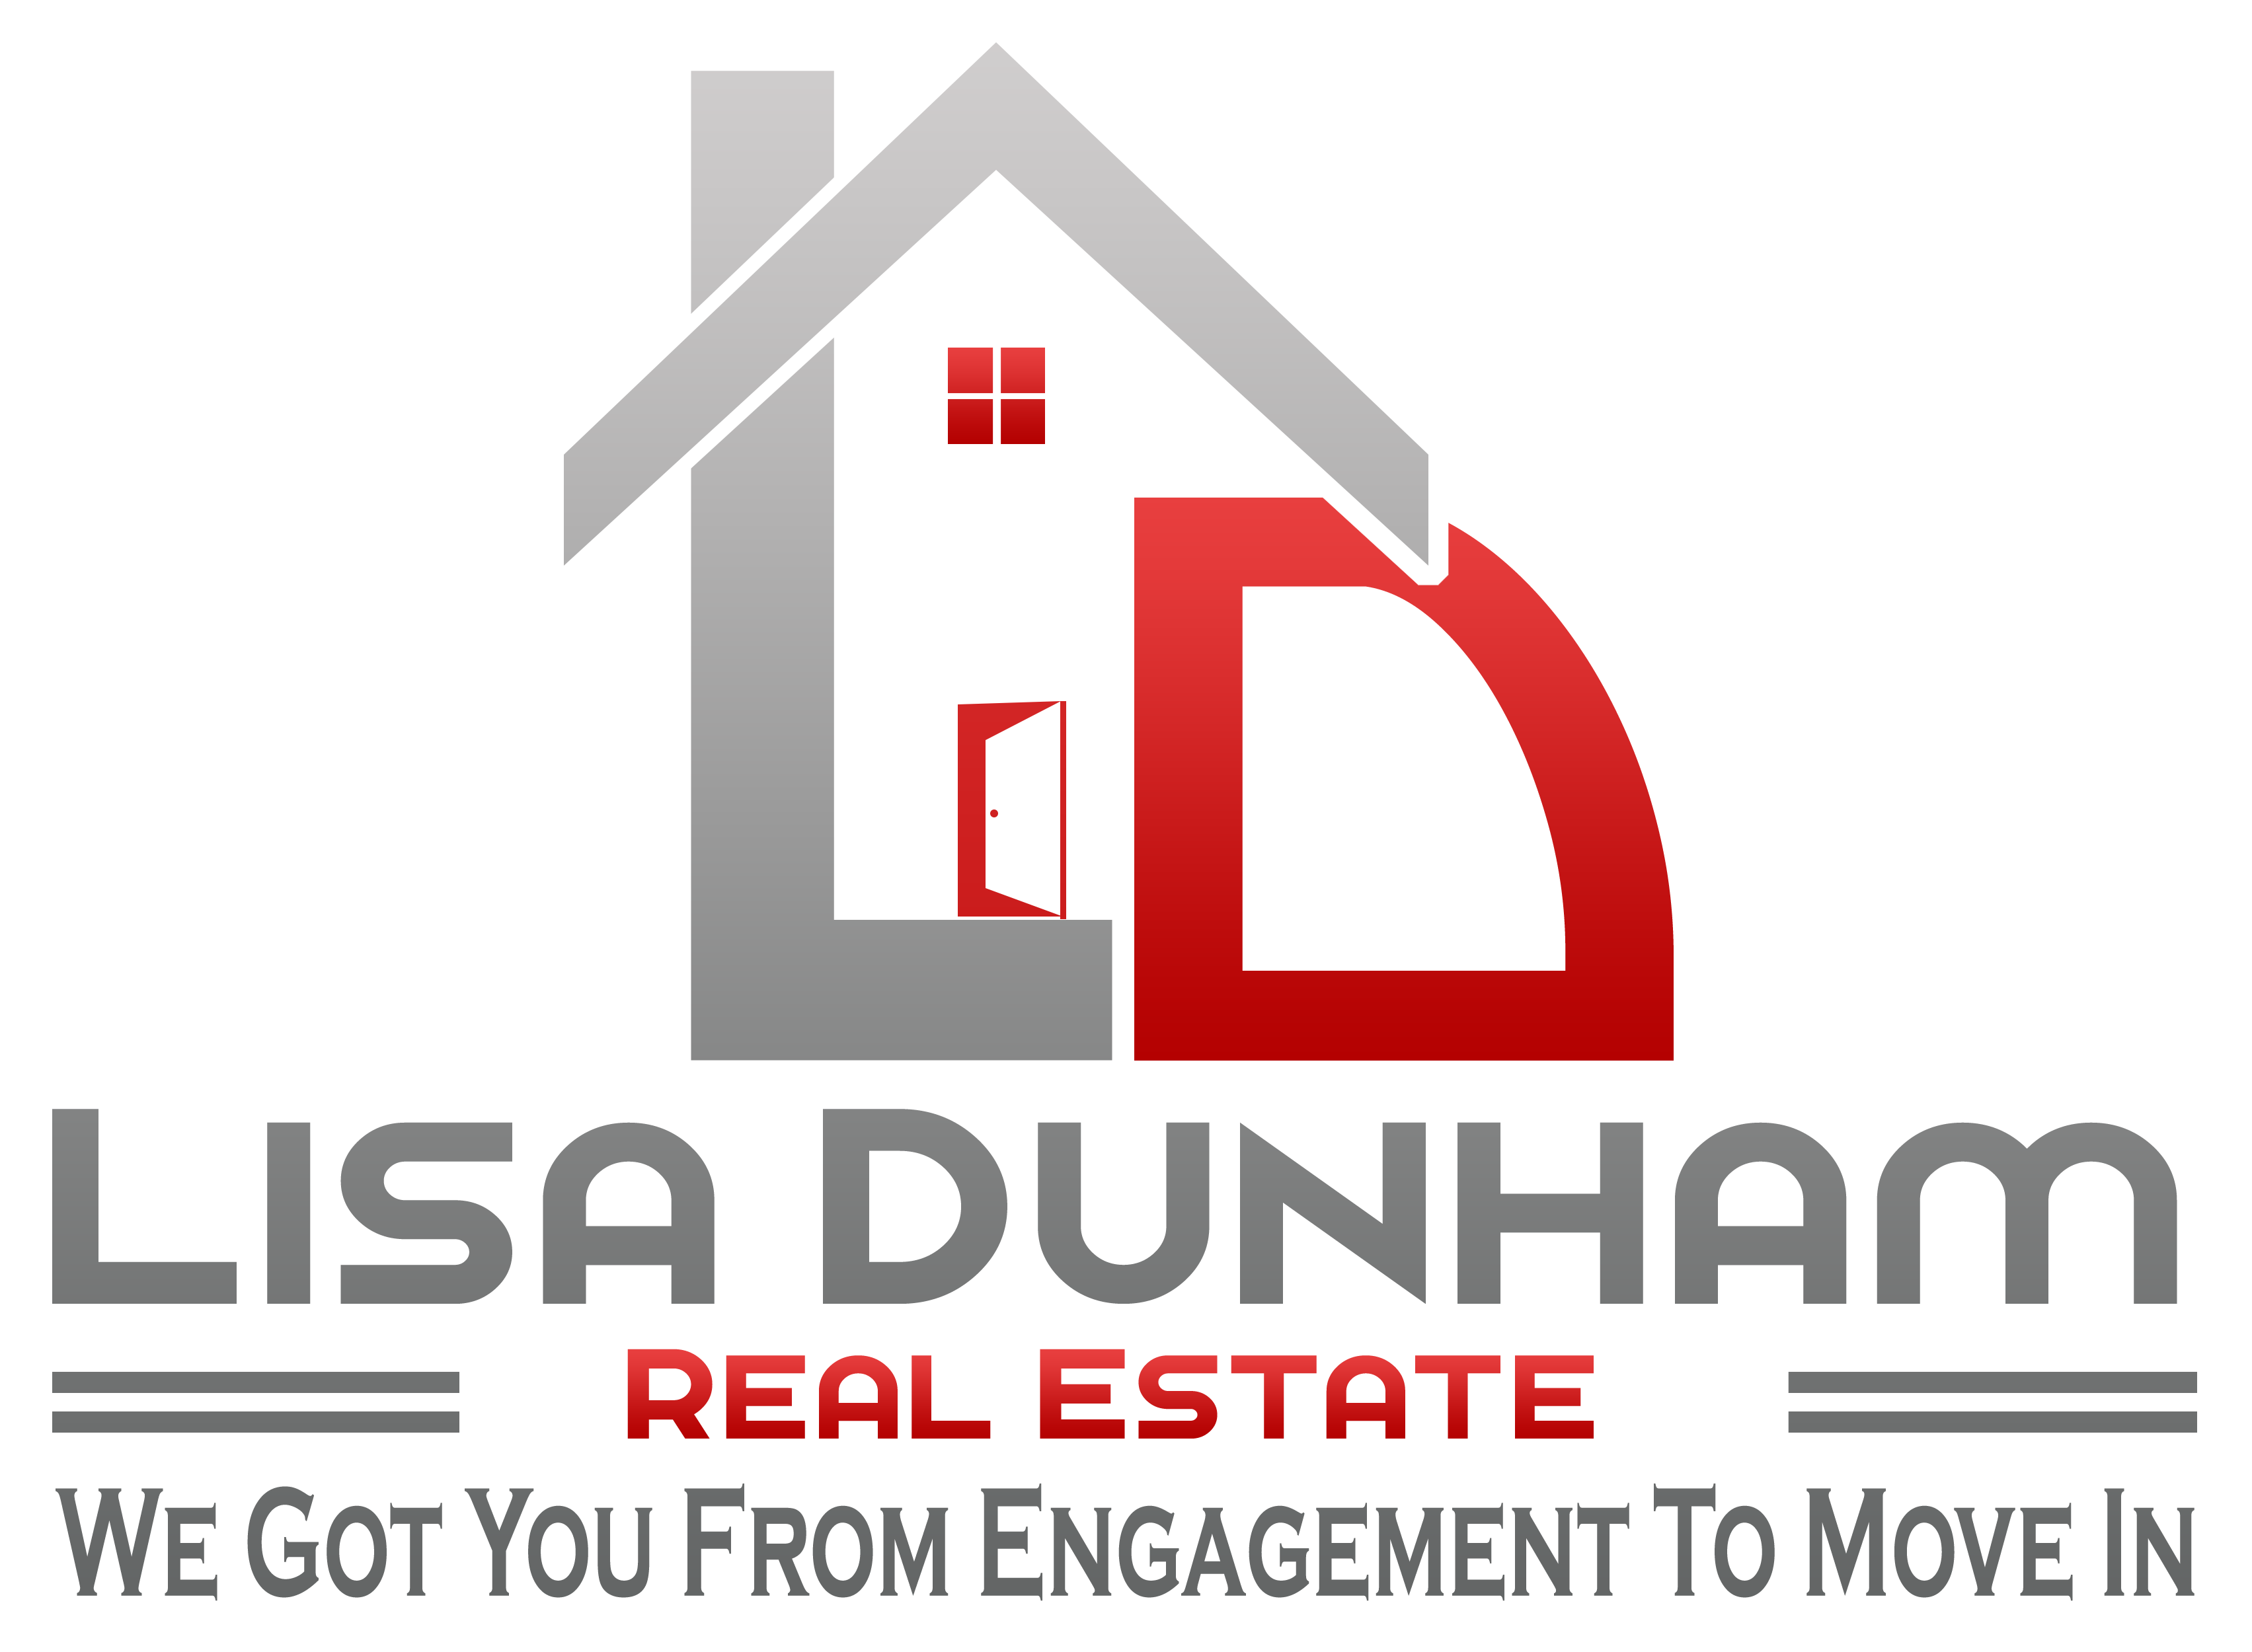 Lisa Dunham Real Estate